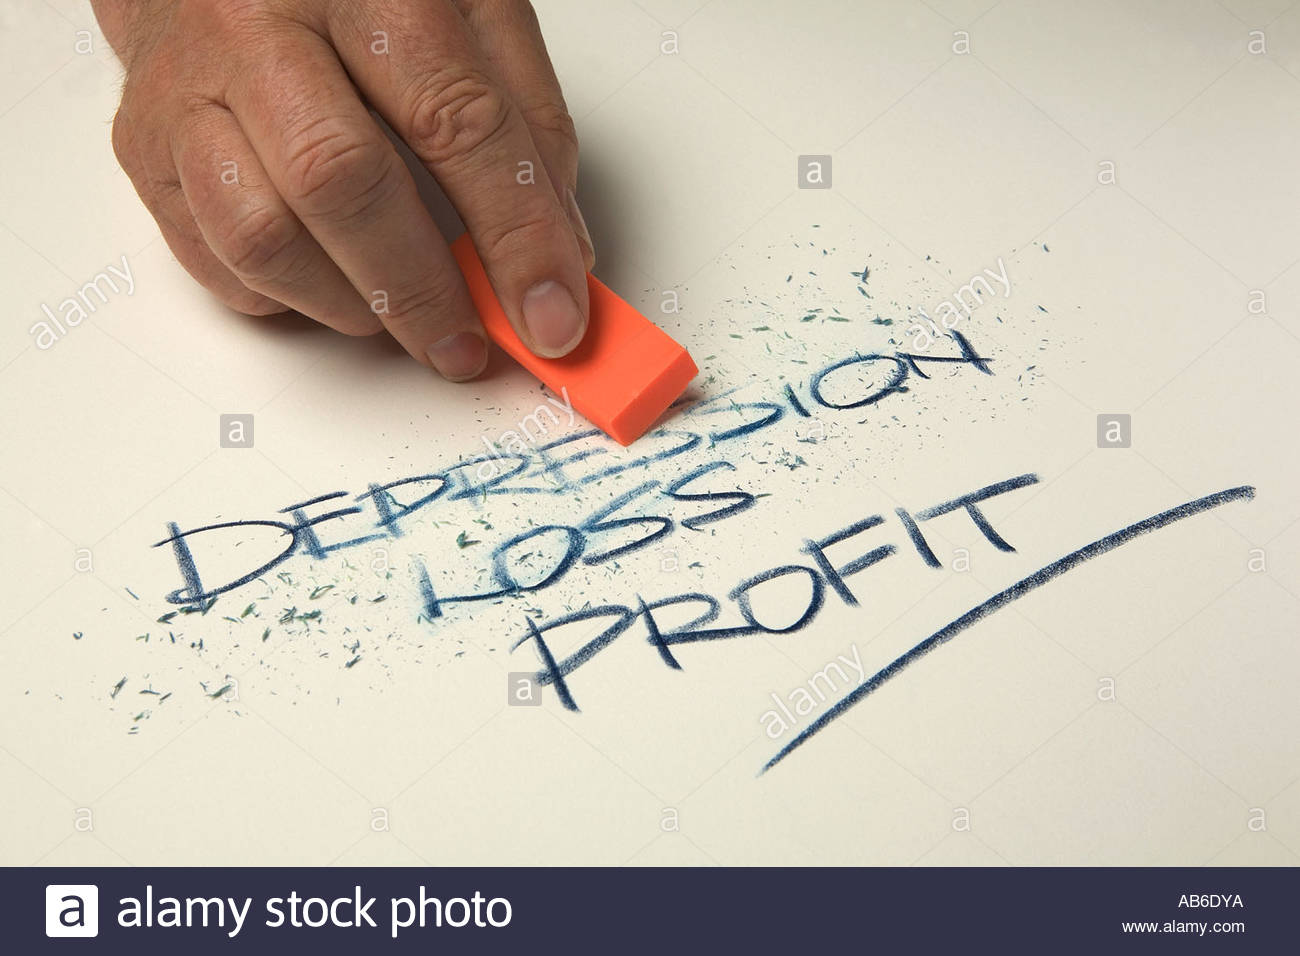 Mans hand holding an orange eraser and rubbing out the words  depression and loss. - Stock Image